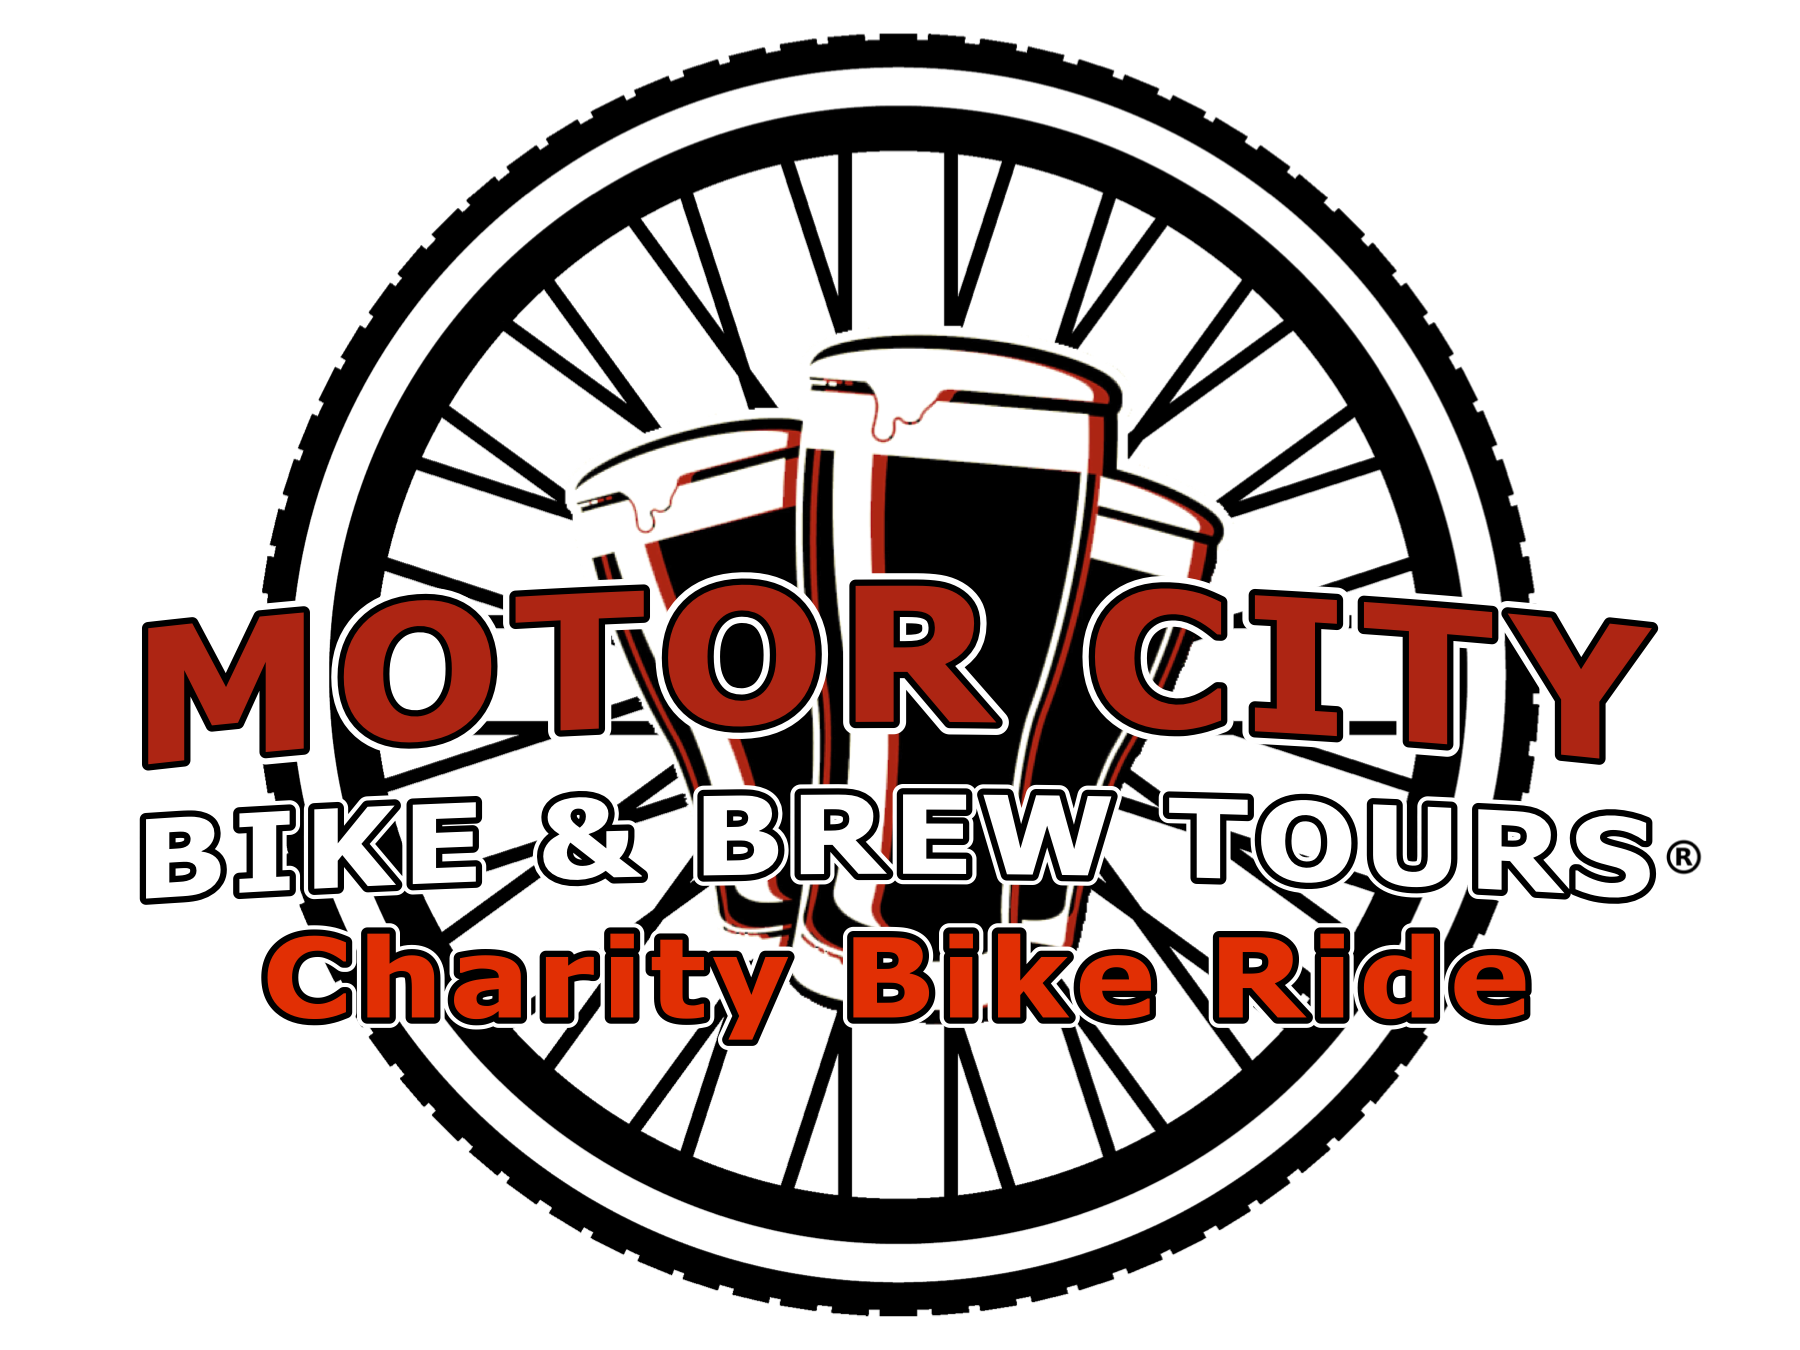 City bike brew tours. Motor vector ride picture freeuse stock